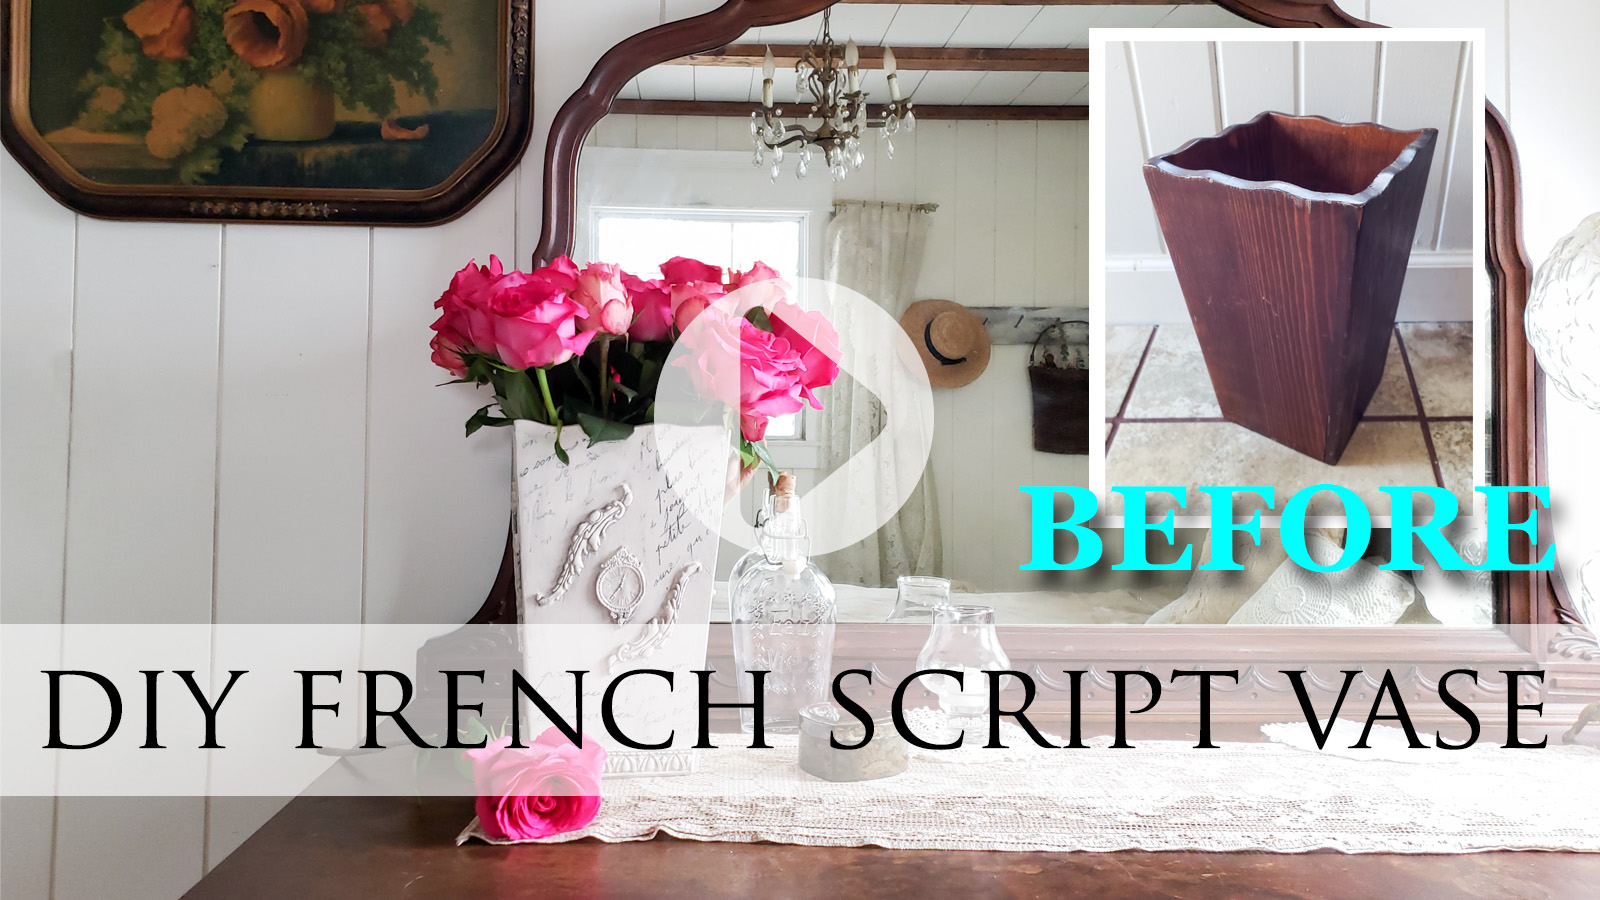 DIY French Script Vase with Video Tutorial by Larissa of Prodigal Pieces | prodigalpieces.com #prodigalpieces